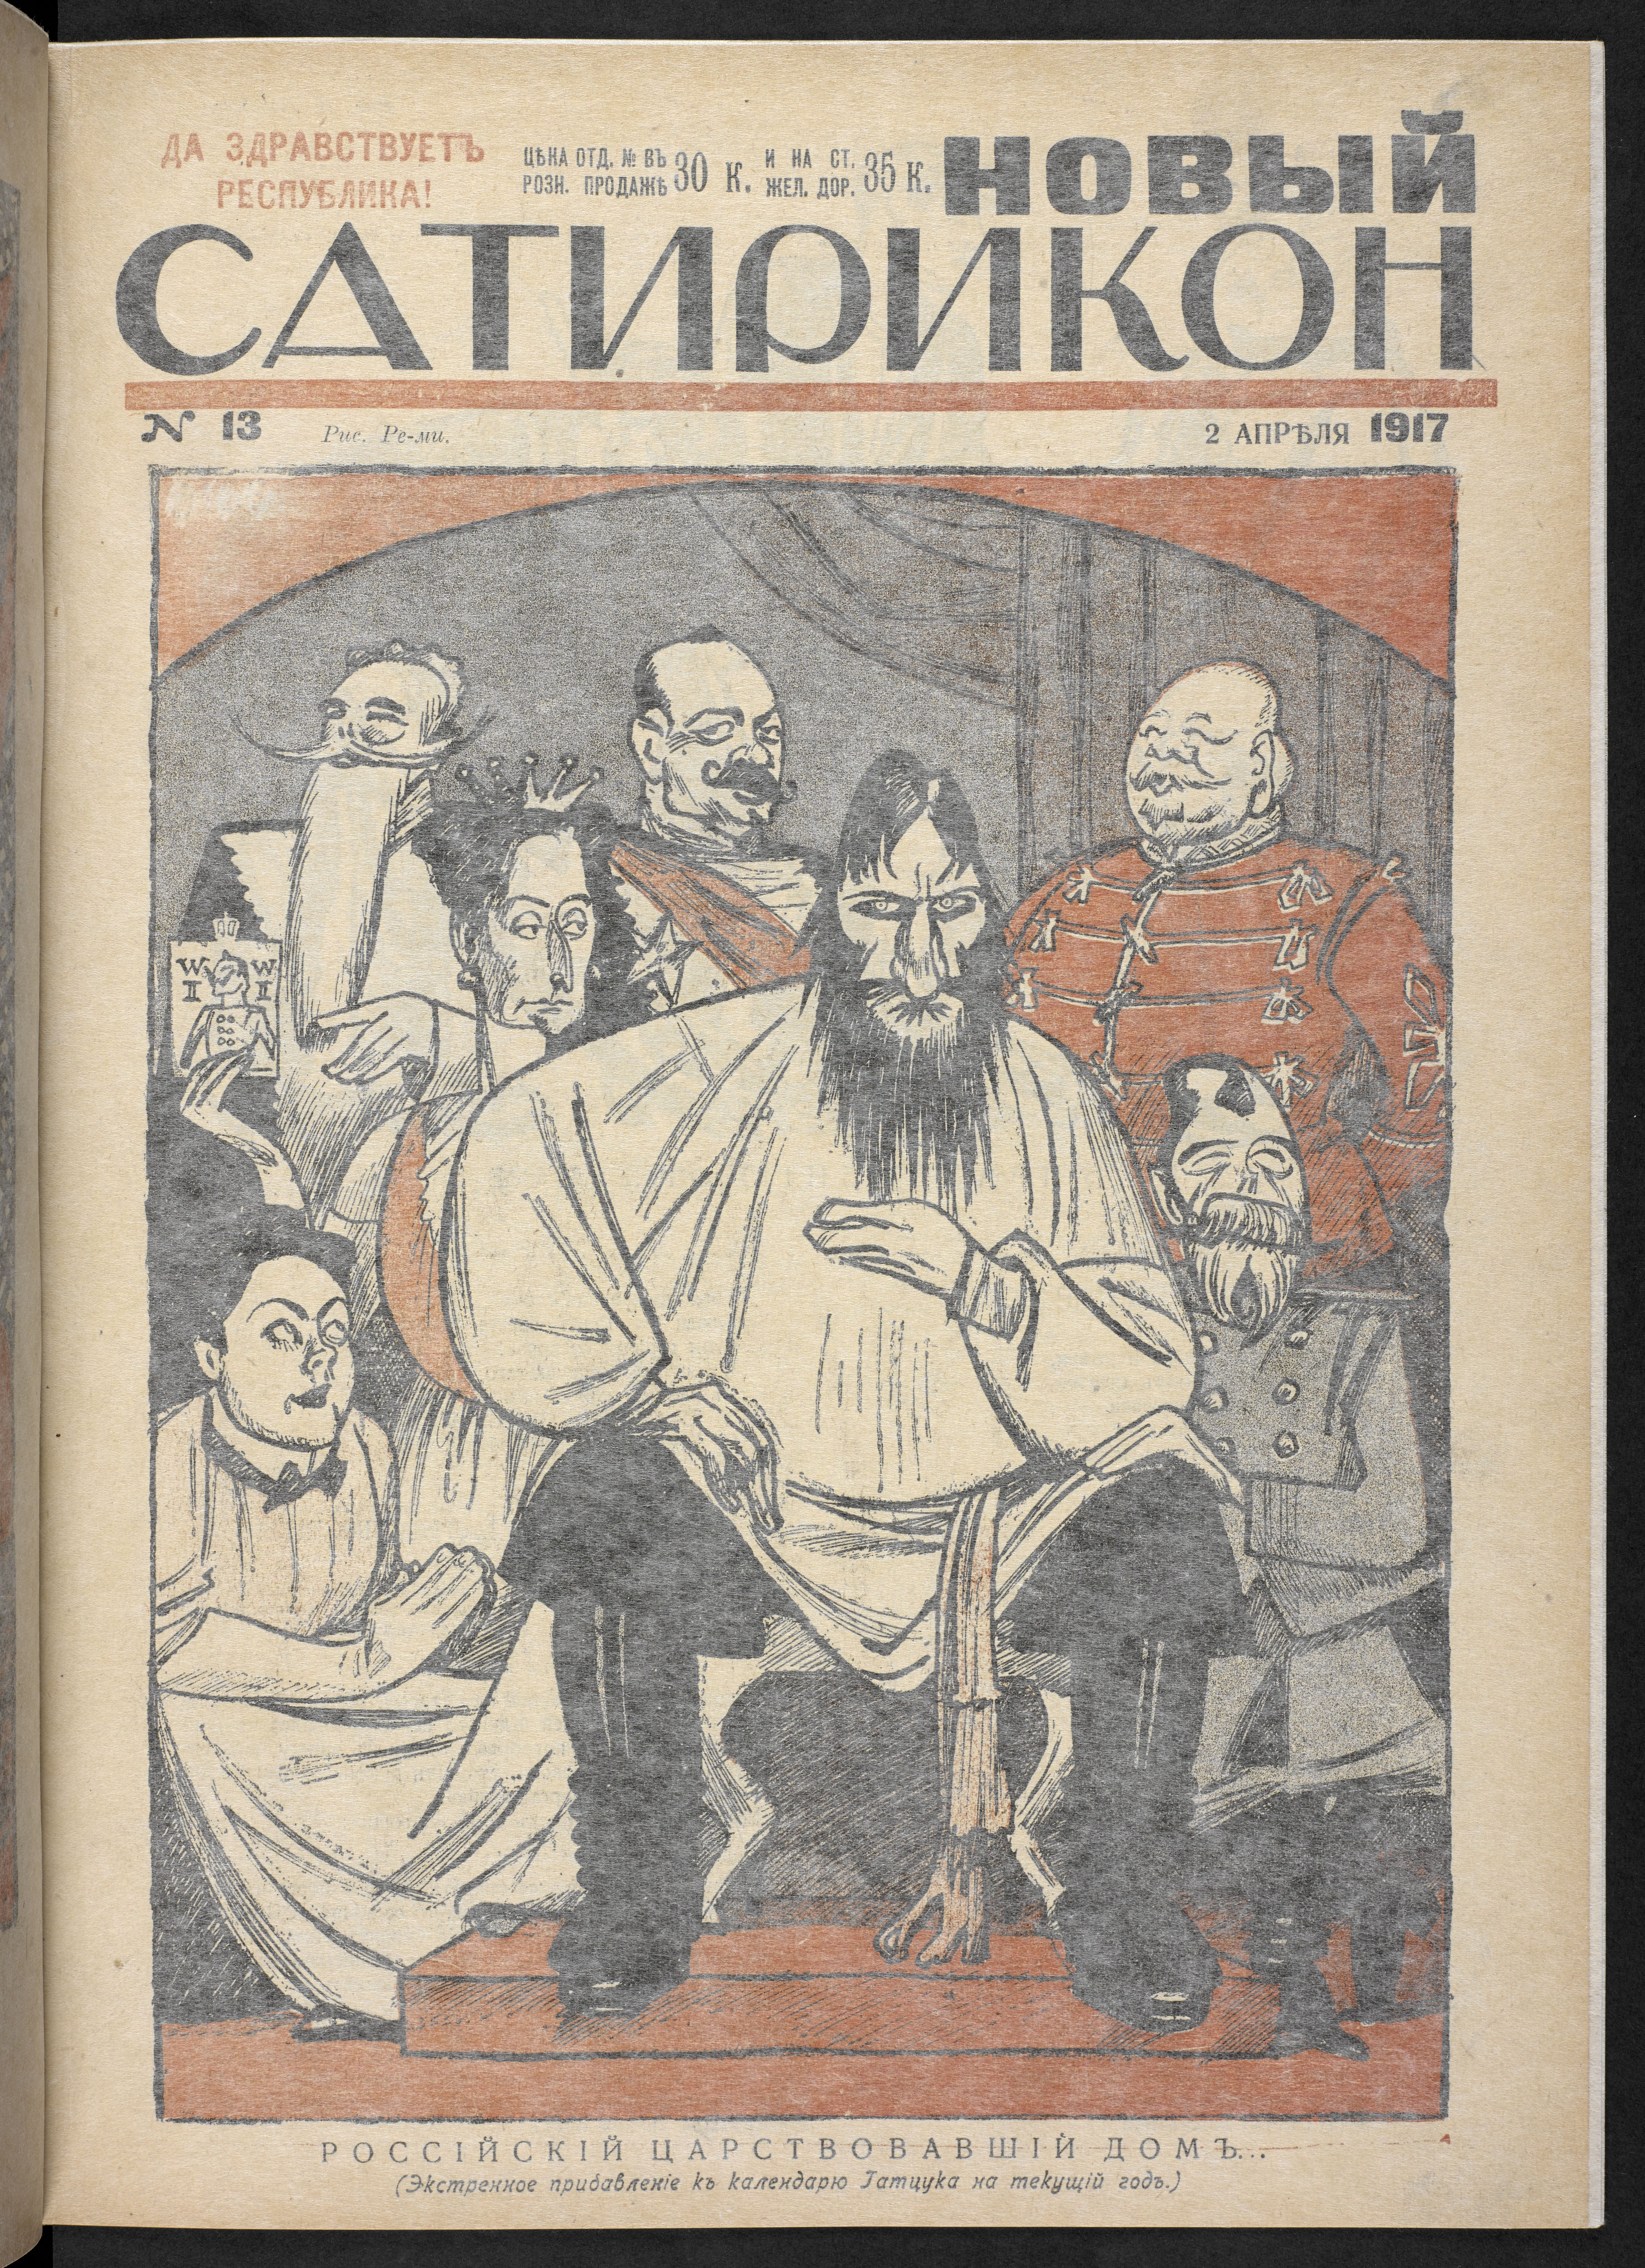 Novyi Satirikon (New Satiricon), April 1917, cover. Caricature of Grigorii Rasputin (c) British Library Board